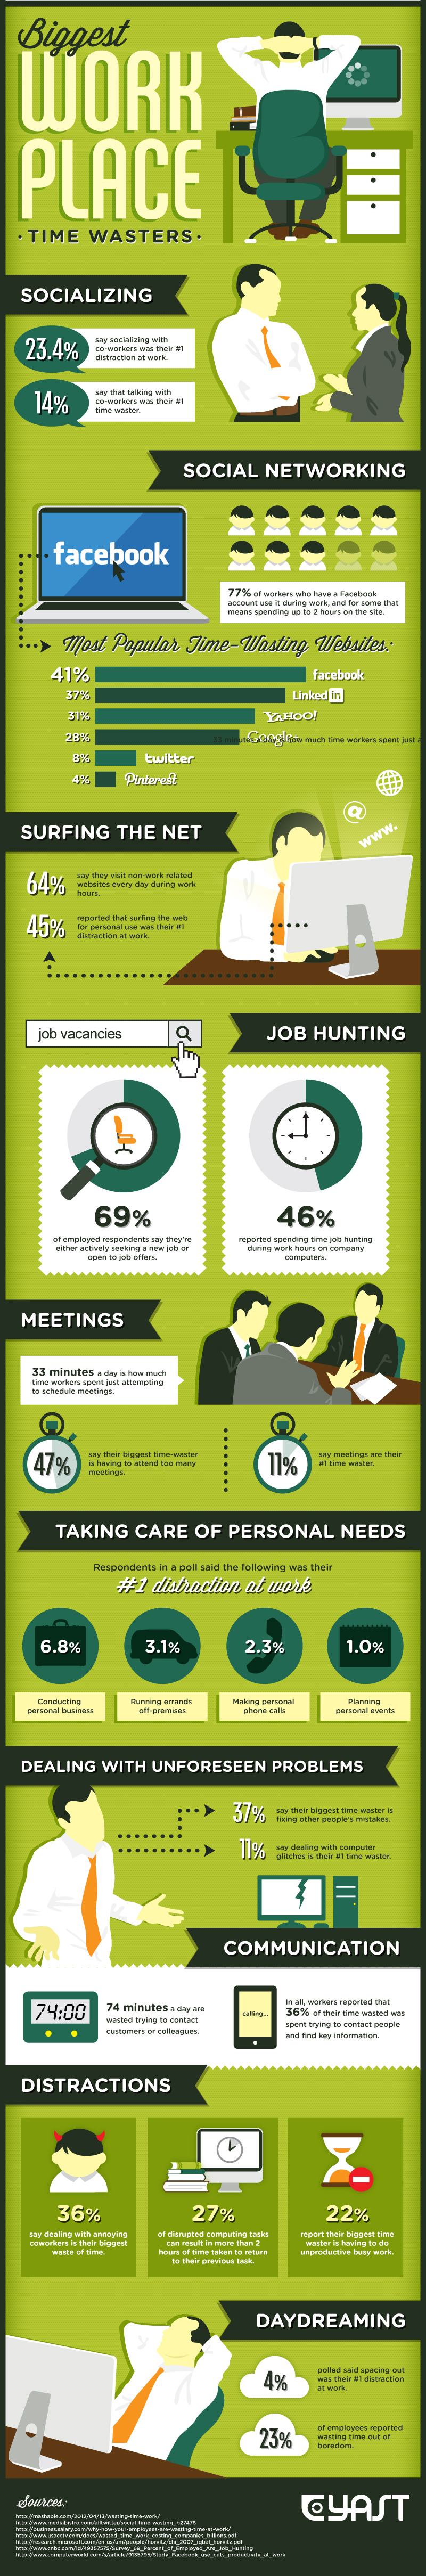 Biggest Workplace Time Wasters #infographic